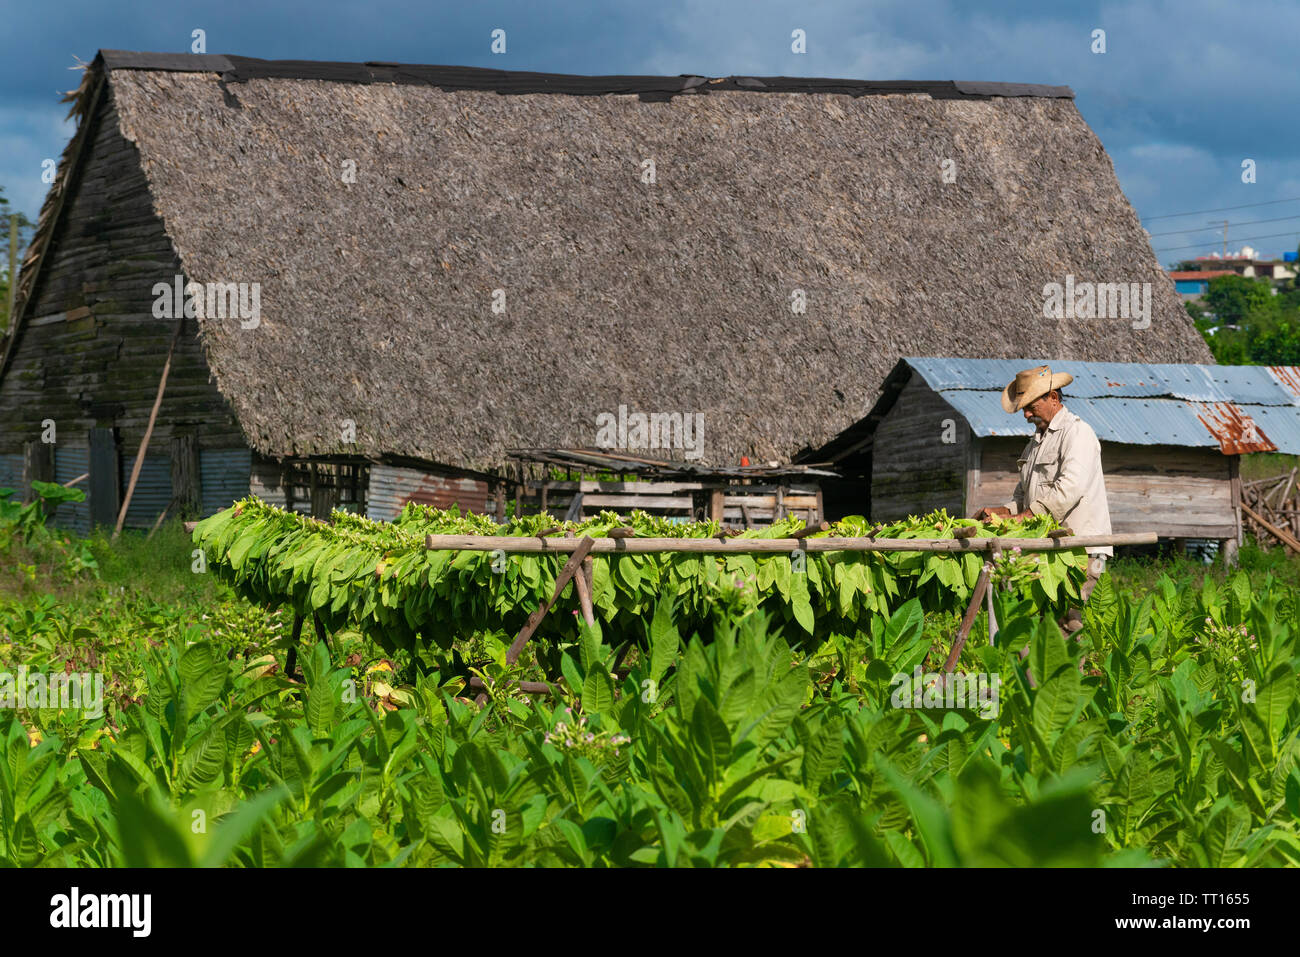 Tobacco farmer working in his field in front of a drying house(secadero) in the Vinales Valley, Vinales, Pinar del Rio Province,Cuba, Caribbean - Stock Image